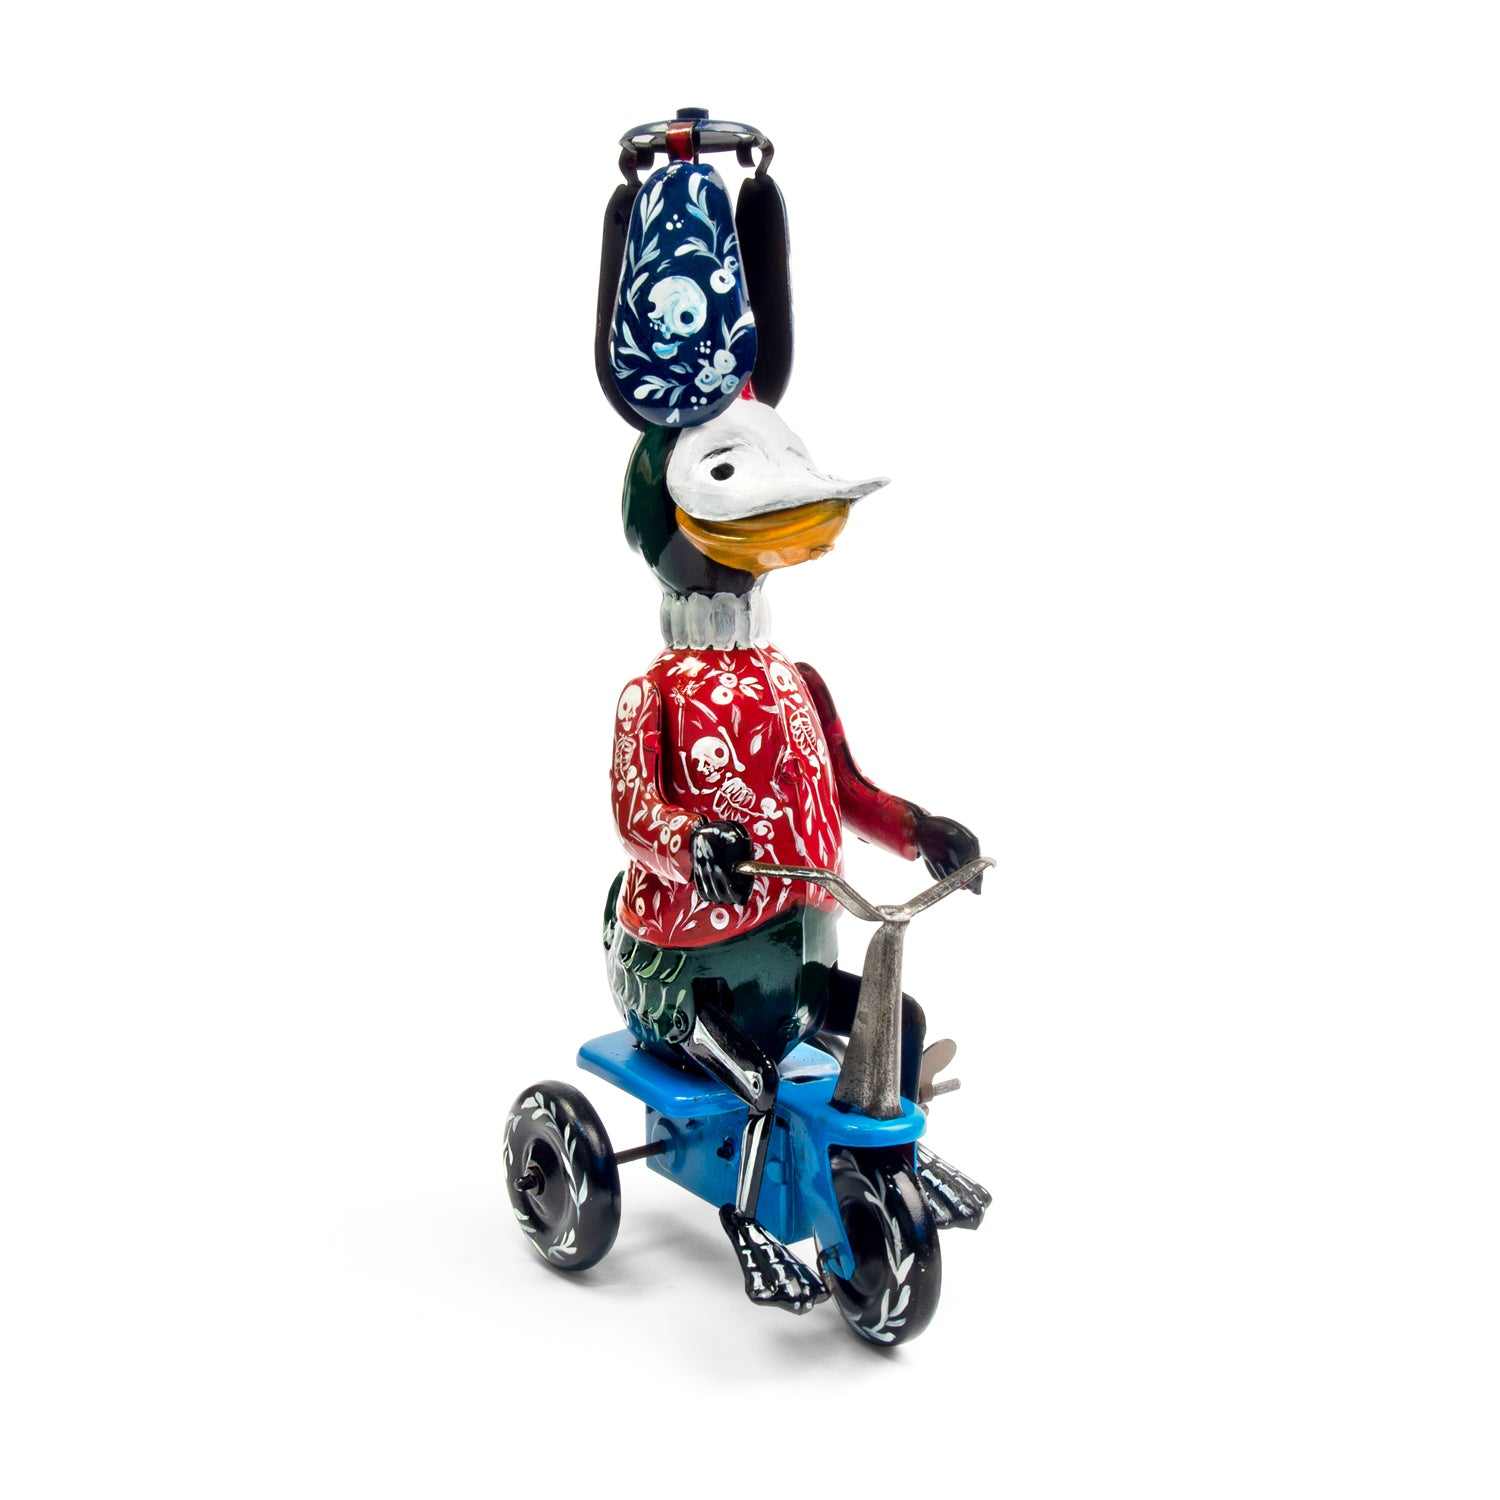 Tinplate clockwork pedalling duck